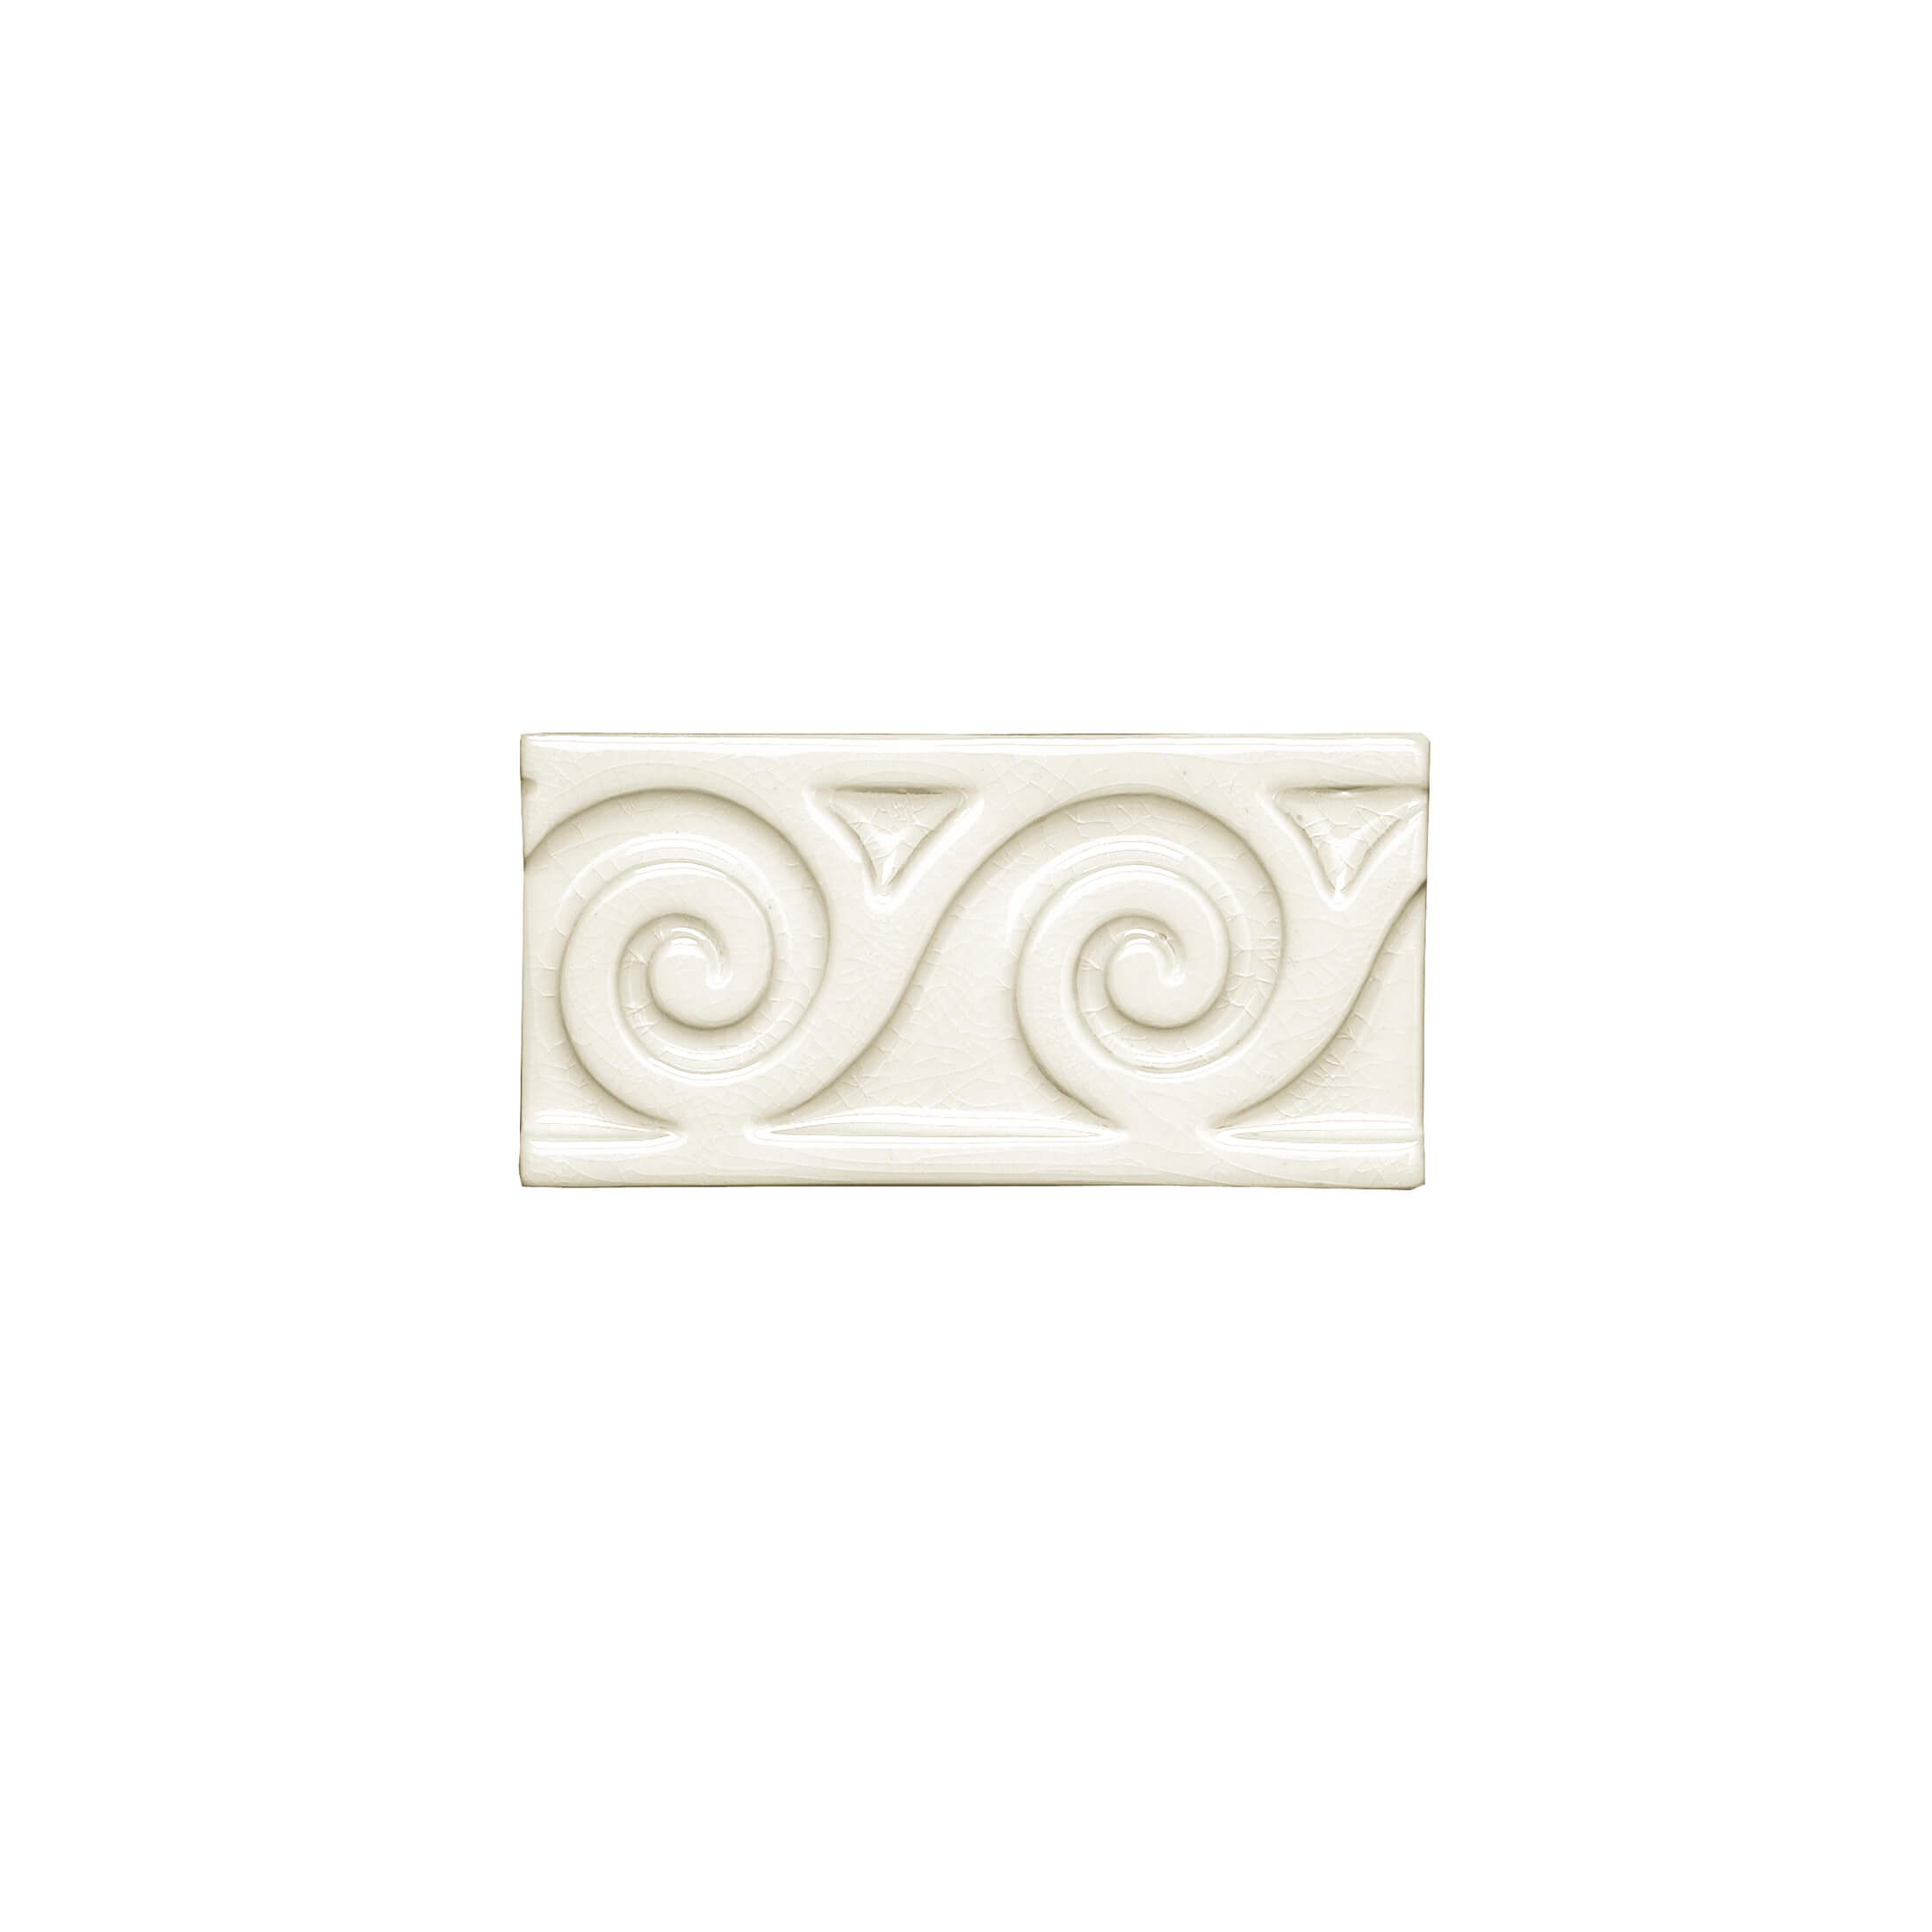 ADMO4088 - RELIEVE MAR C/C - 7.5 cm X 15 cm